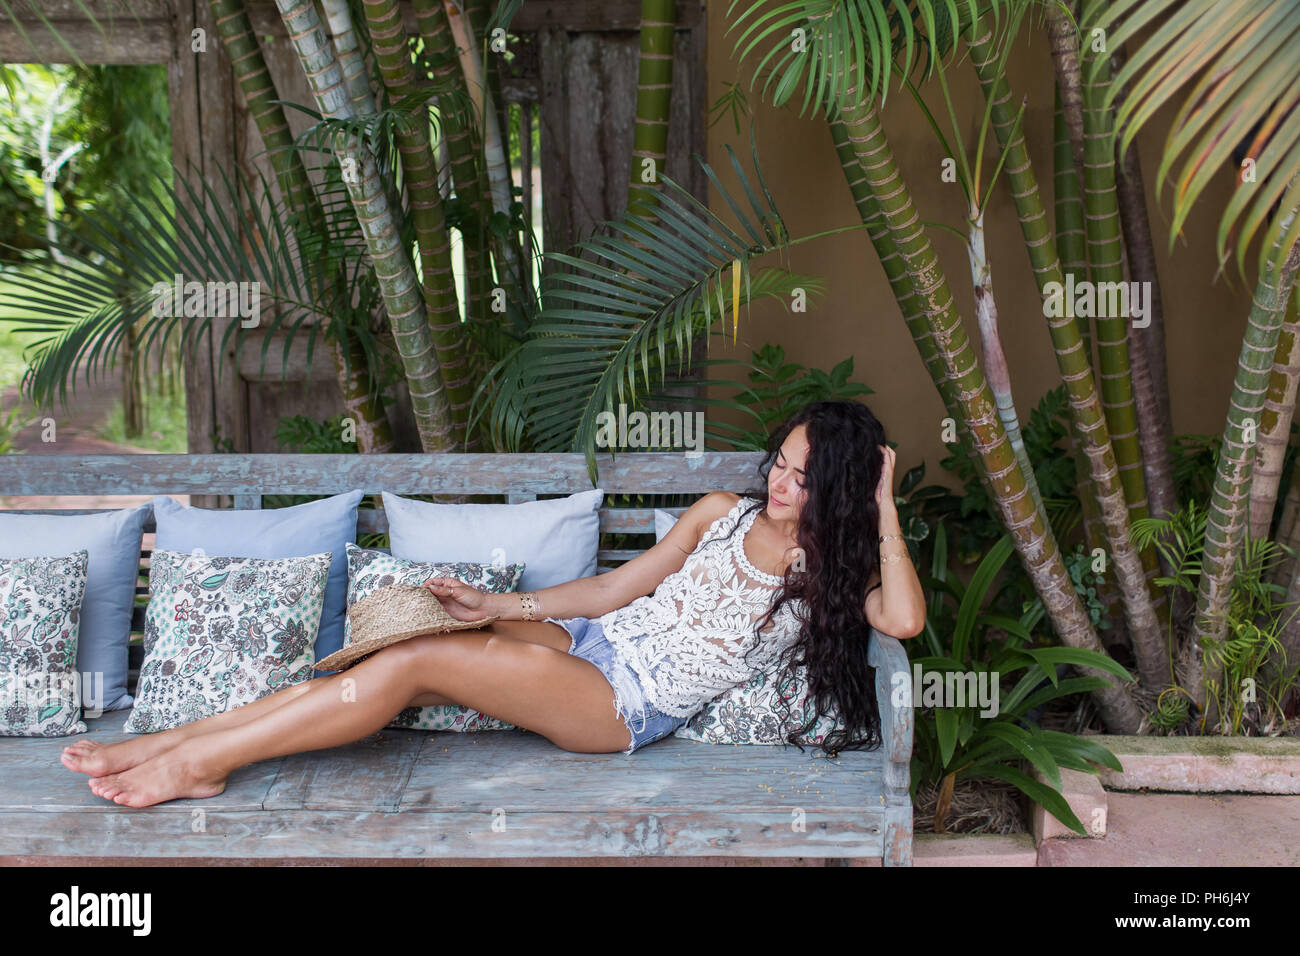 Belle jeune femme avec de longs cheveux noirs relaxing on sofa with straw hat Photo Stock